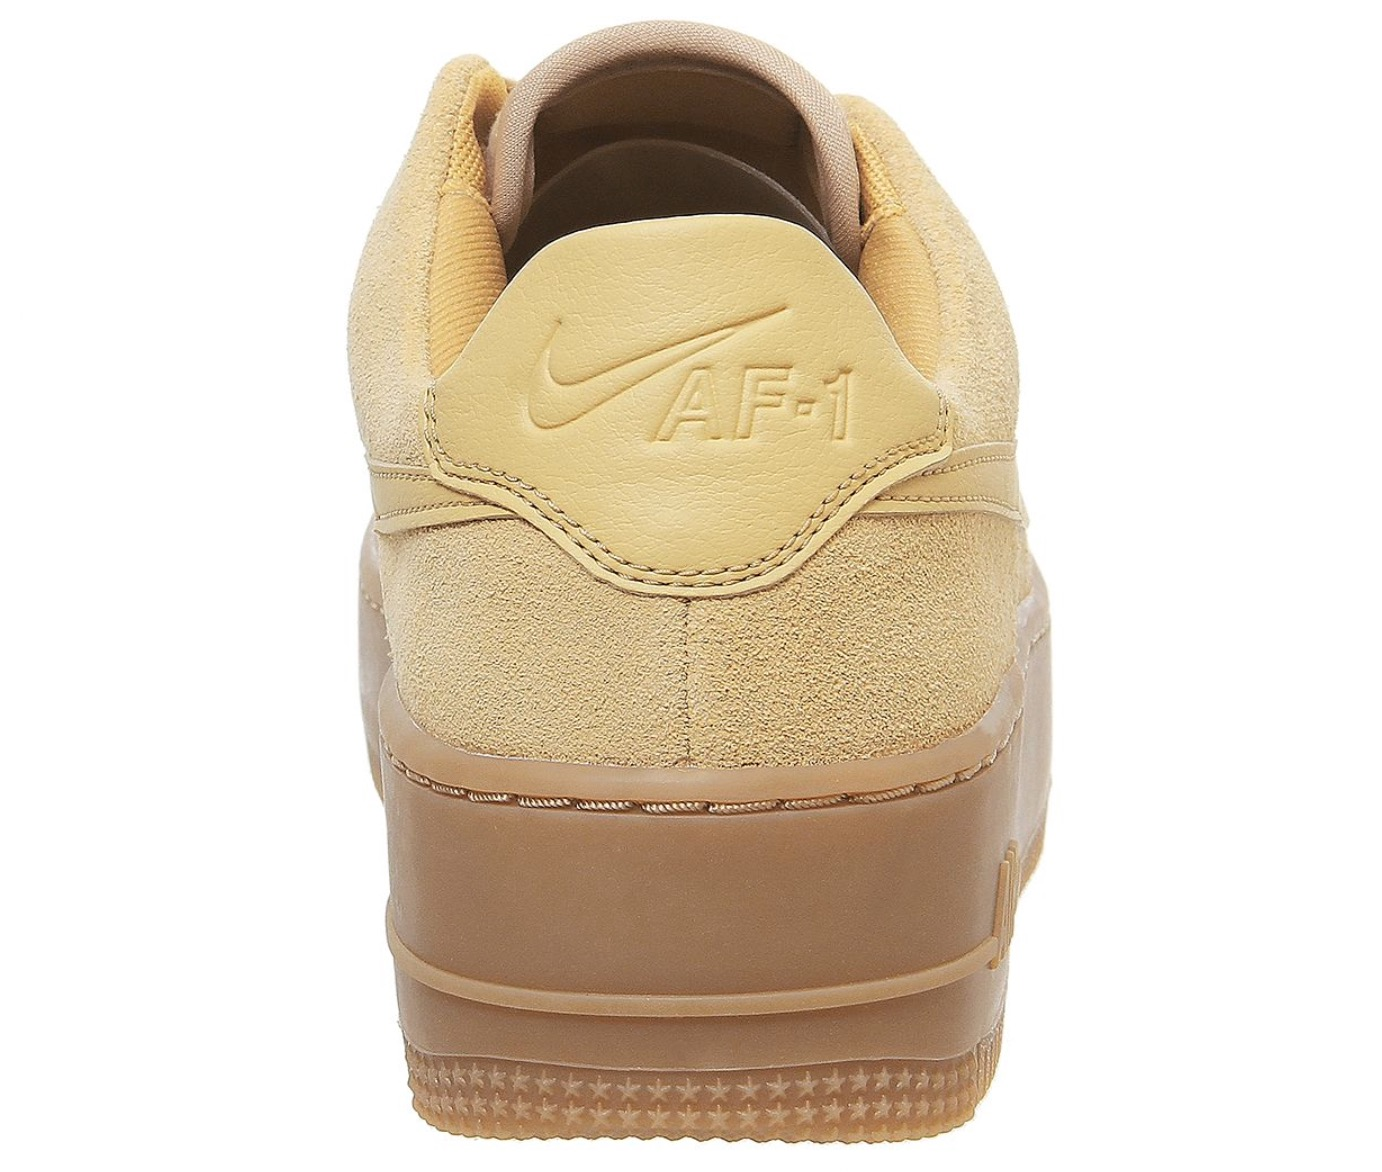 SAVE £20 On The New Nike Air Force 1 Club Gold In Offspring's Sale! heel